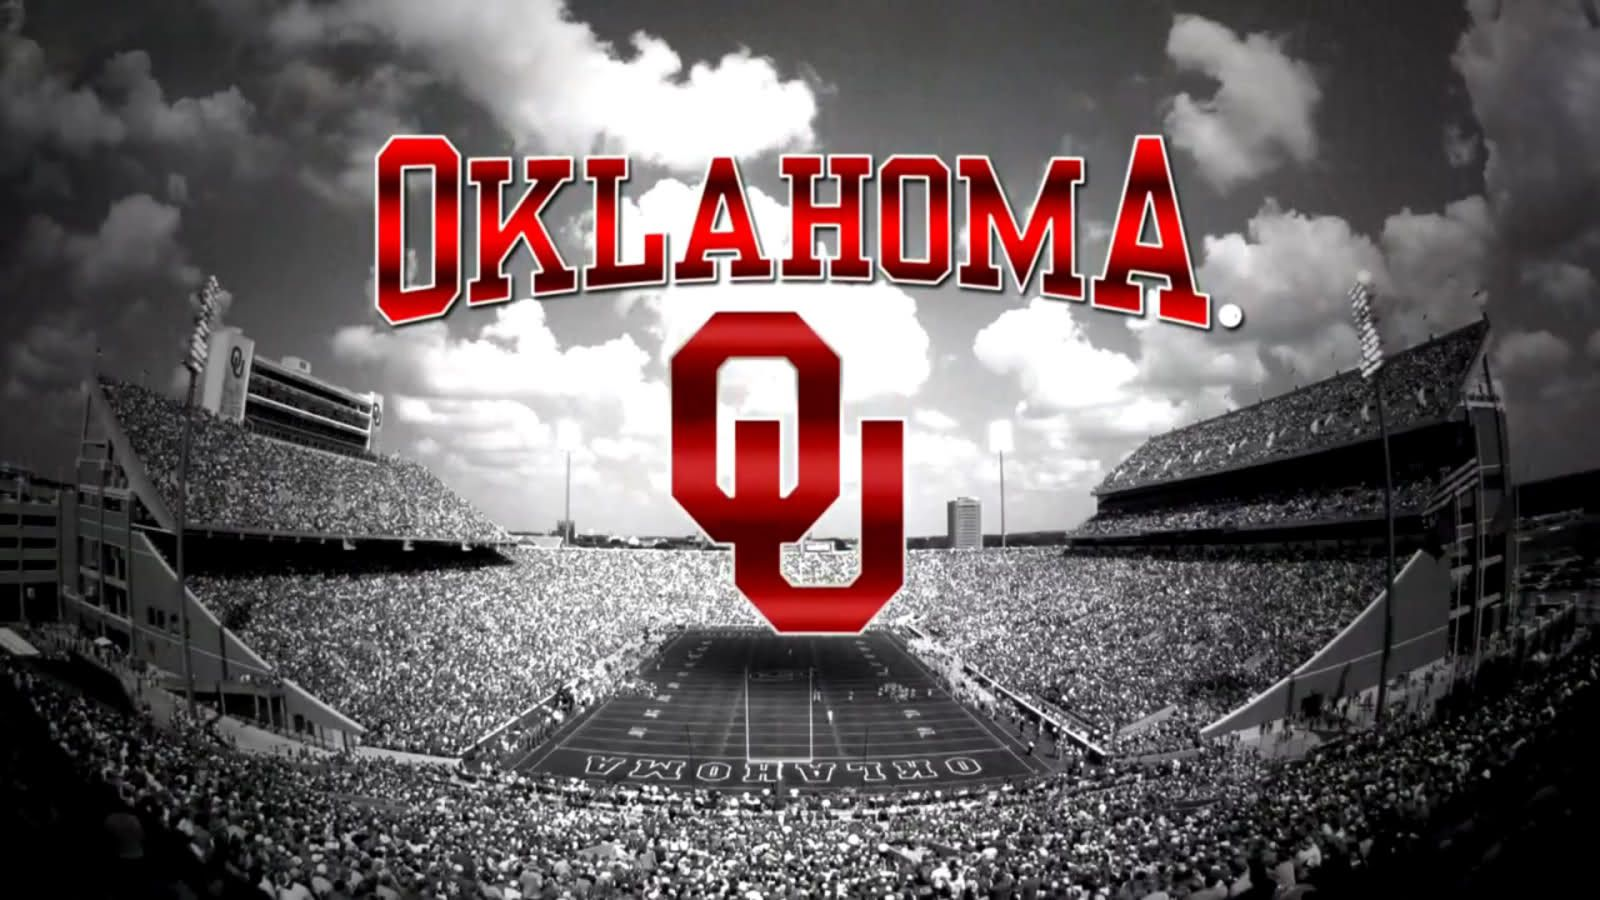 ou sooners wallpaper for laptop - photo #11